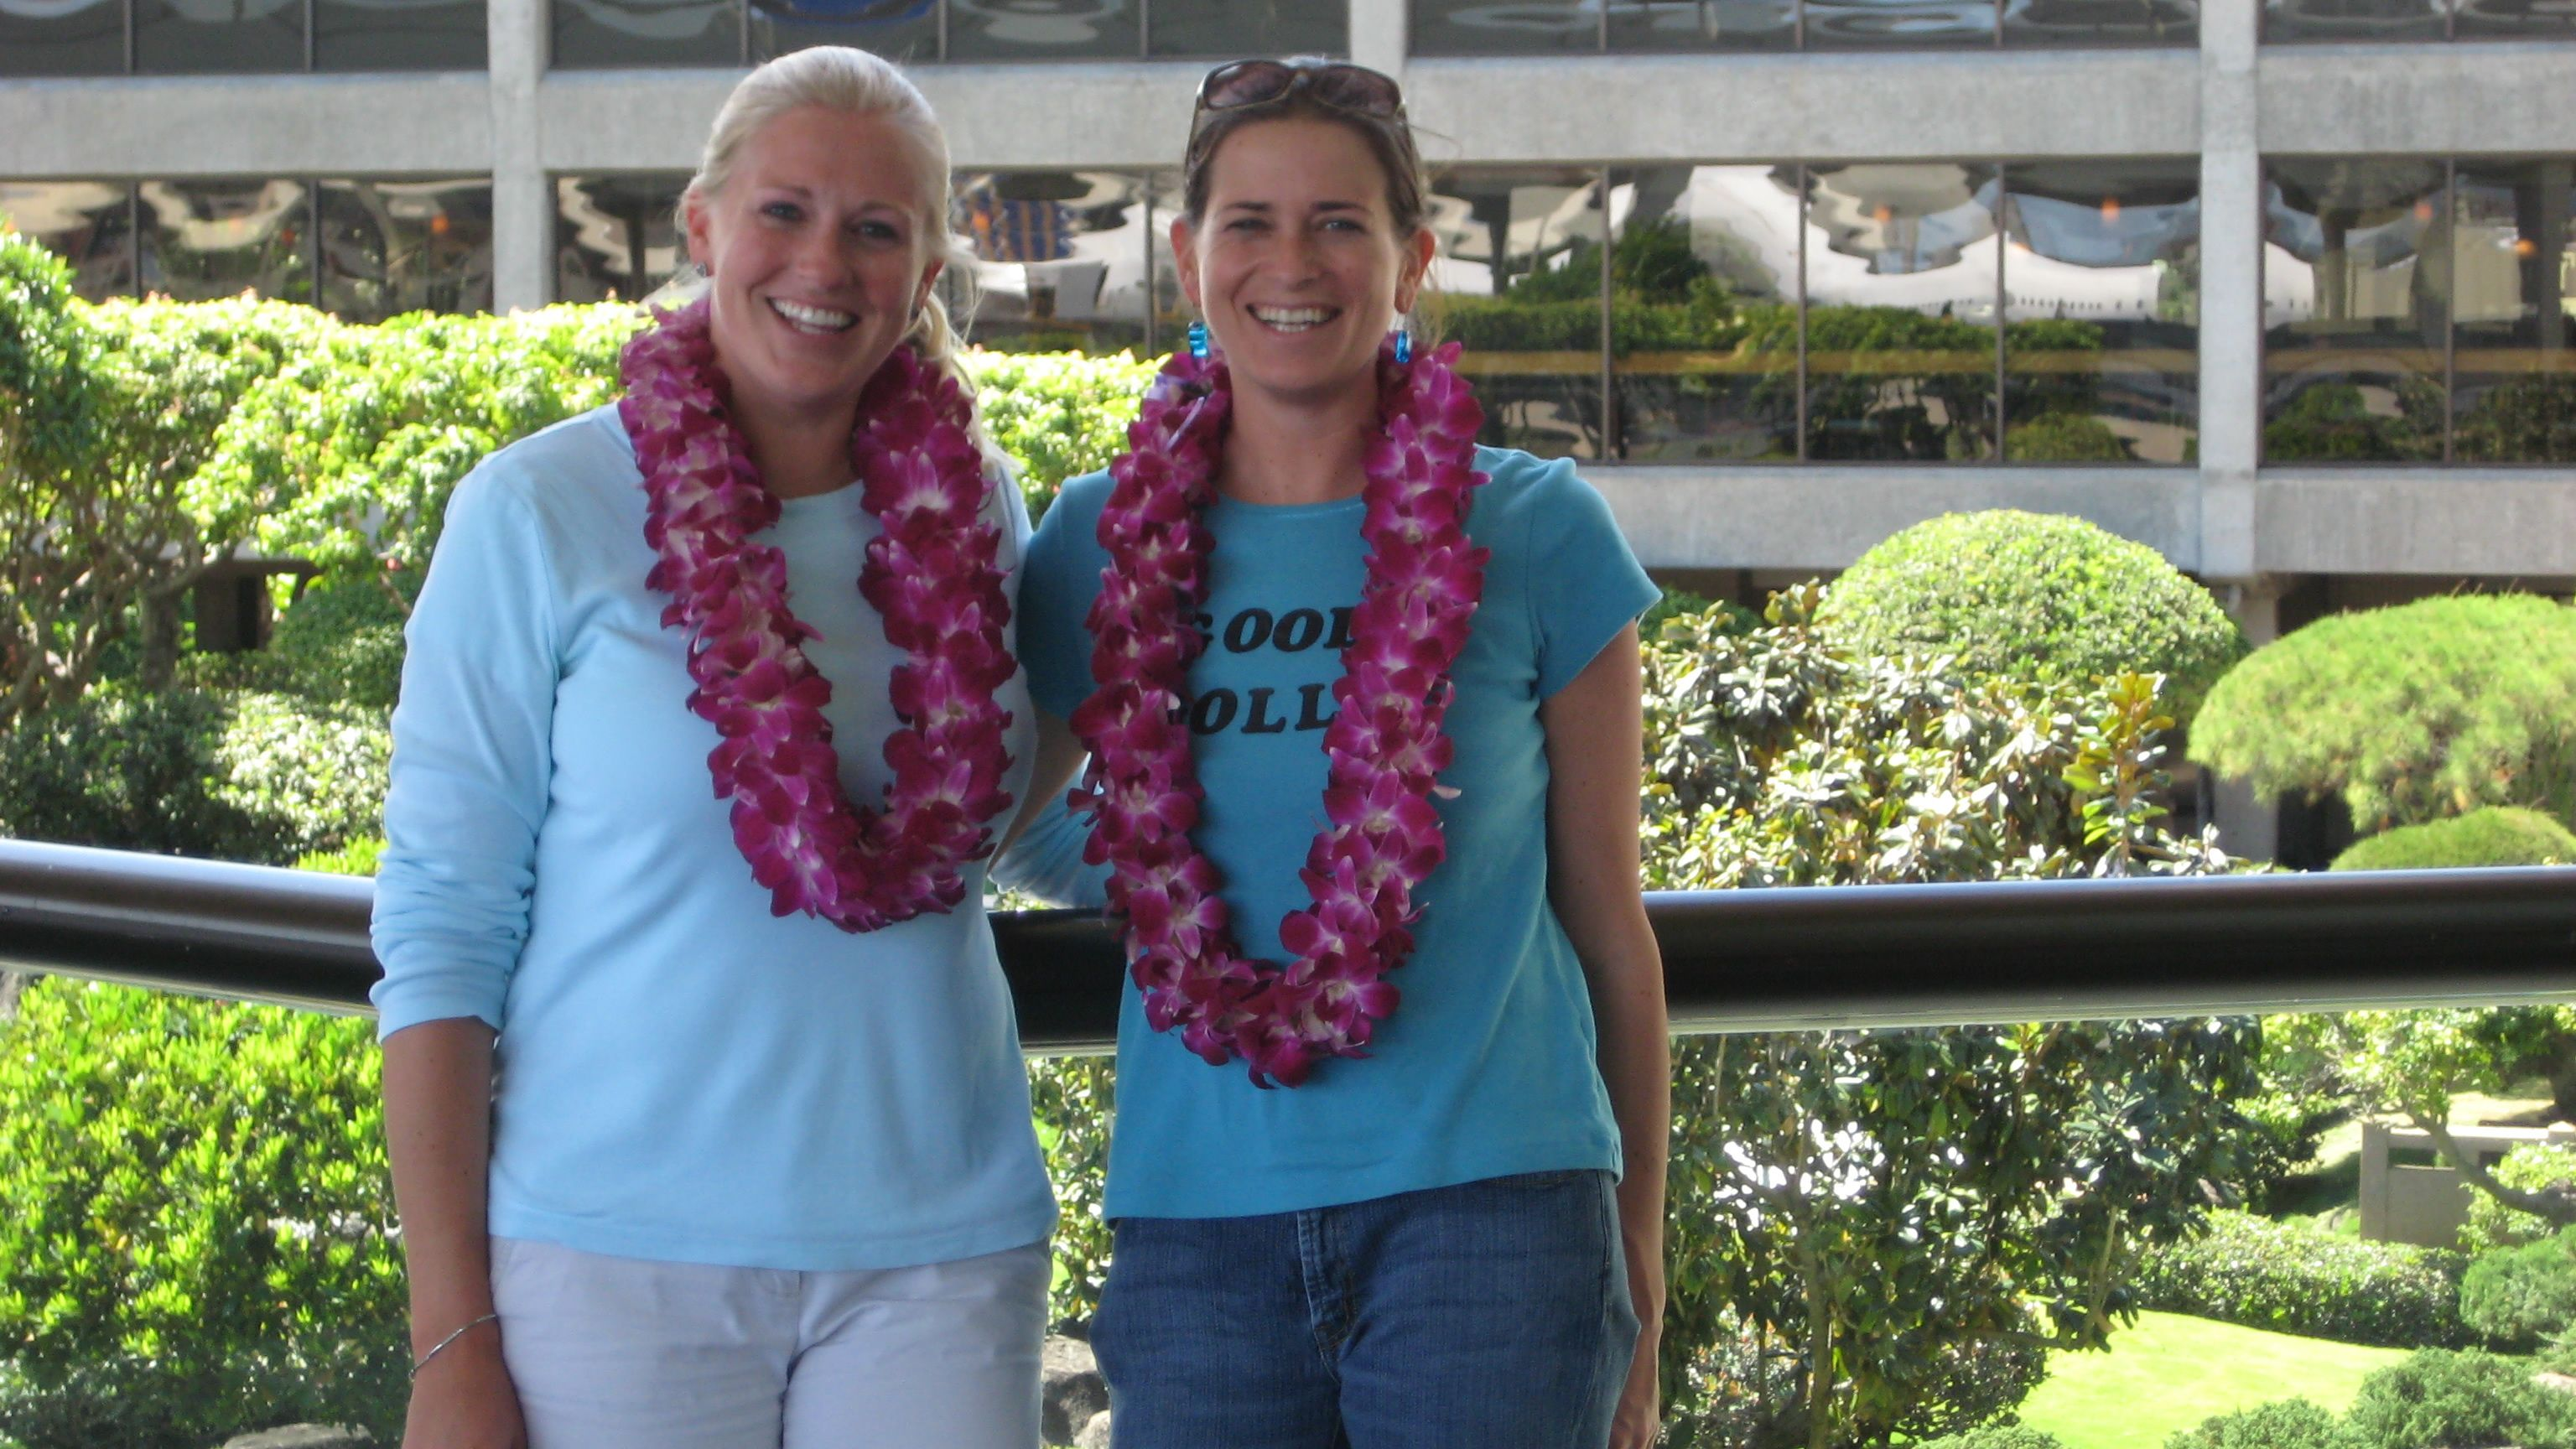 A gorgeous pair of double orchid leis at the honolulu international a gorgeous pair of double orchid leis at the honolulu international airport right off the plane m4hsunfo